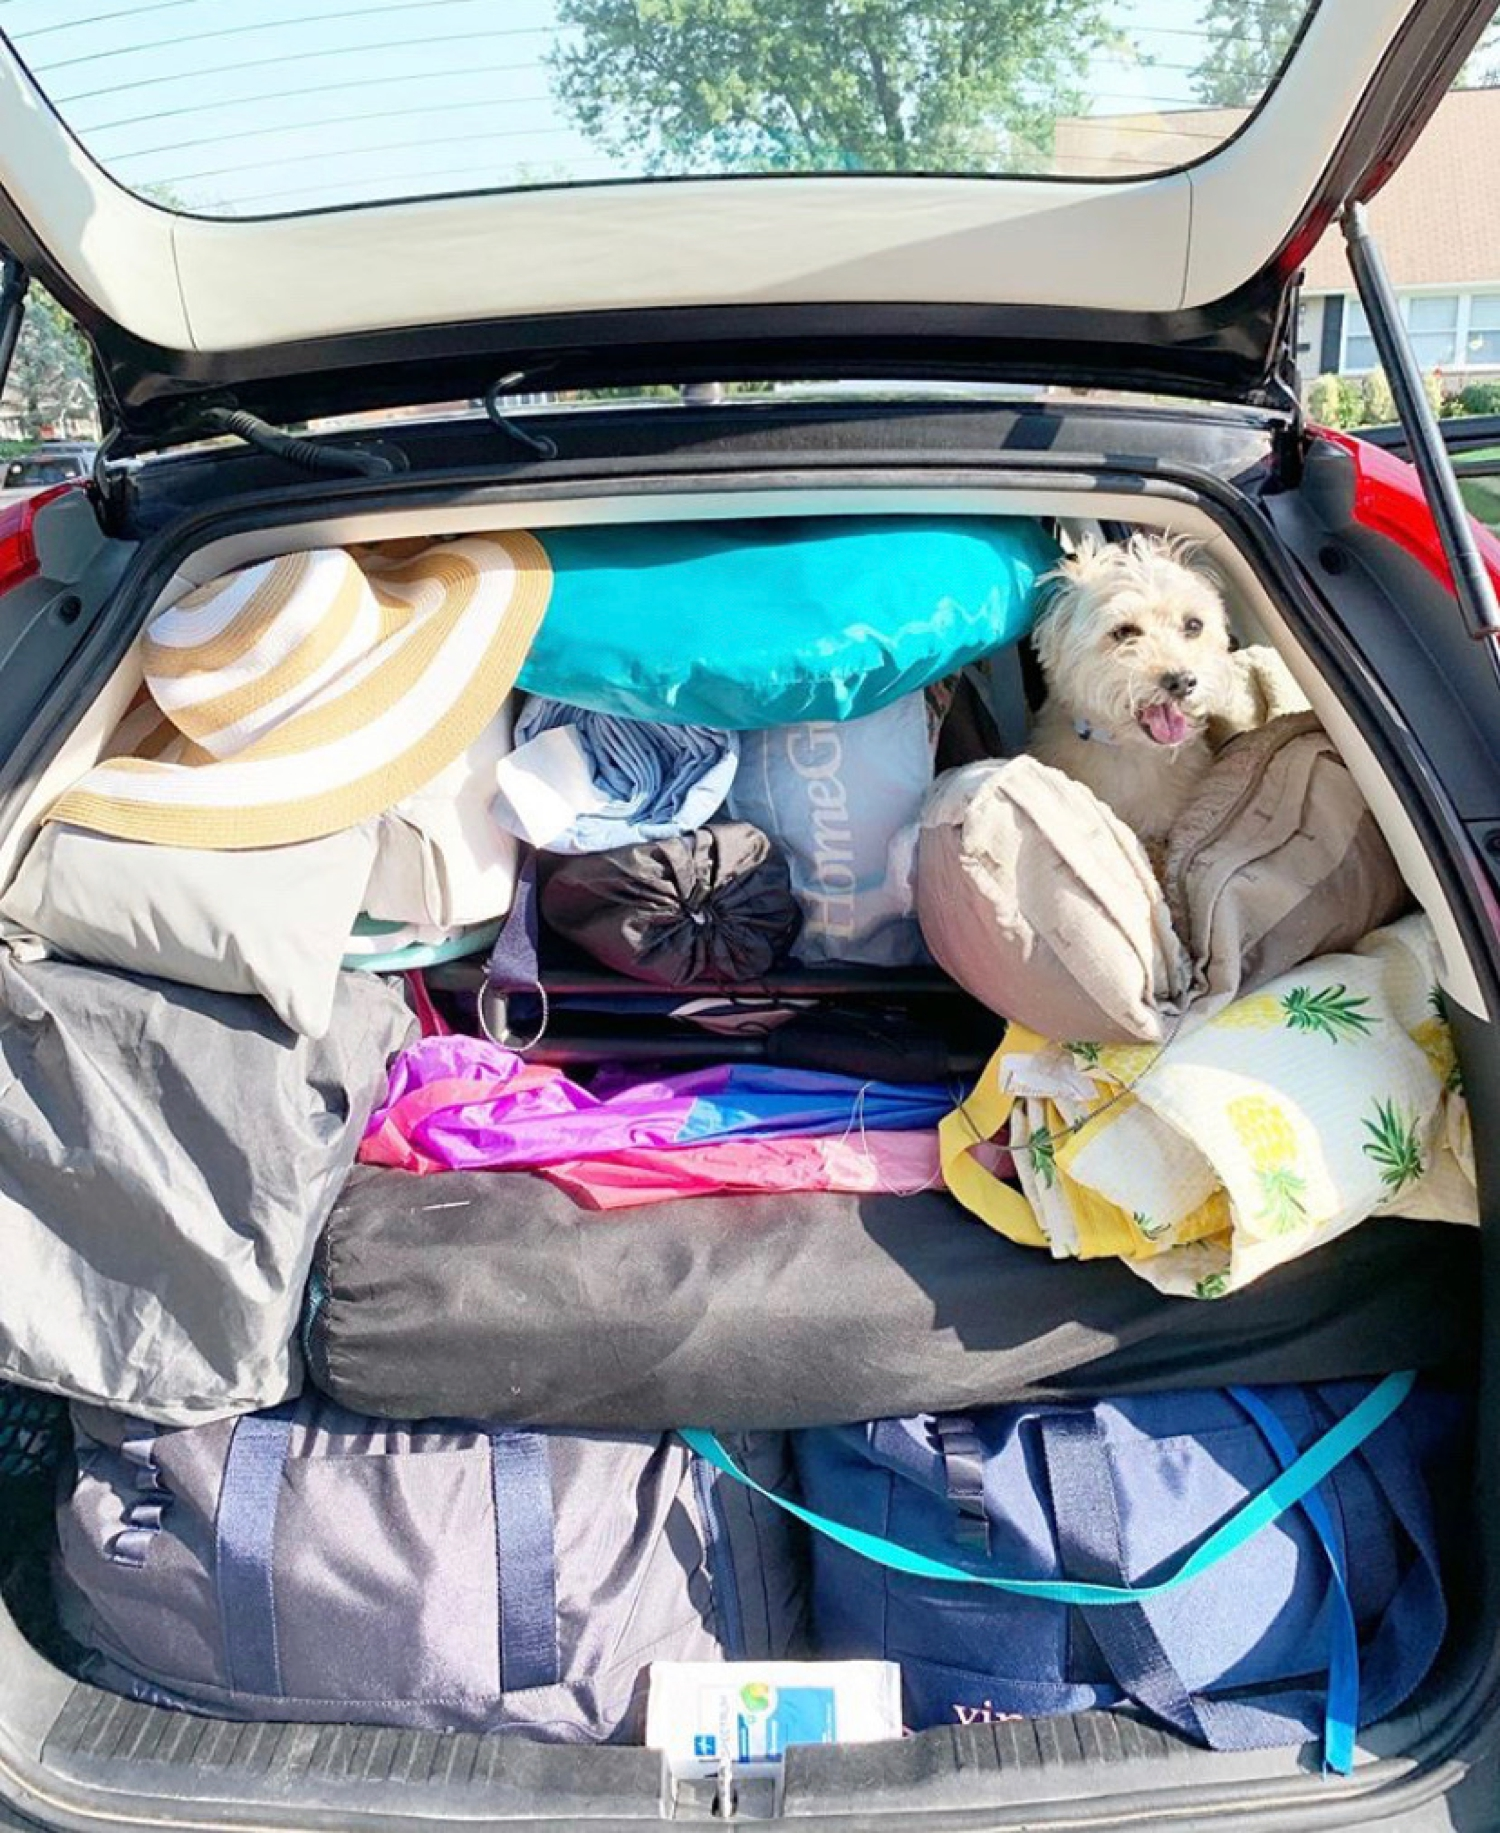 We somehow fit it all with the pup!